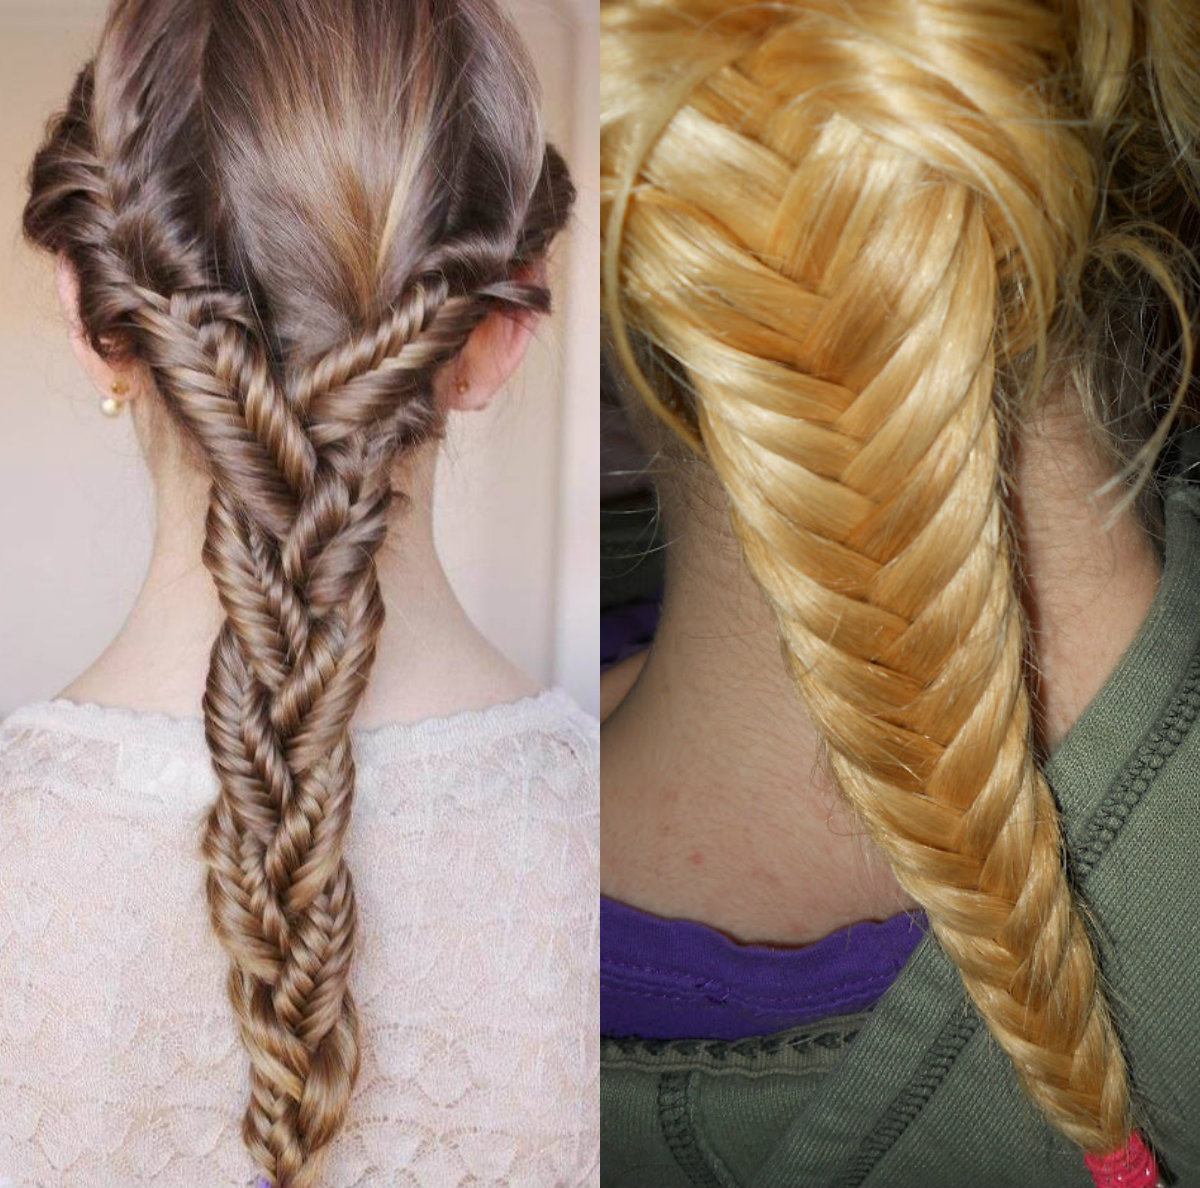 Fishbone braid hairstyles ideas to try for Fish tail hair